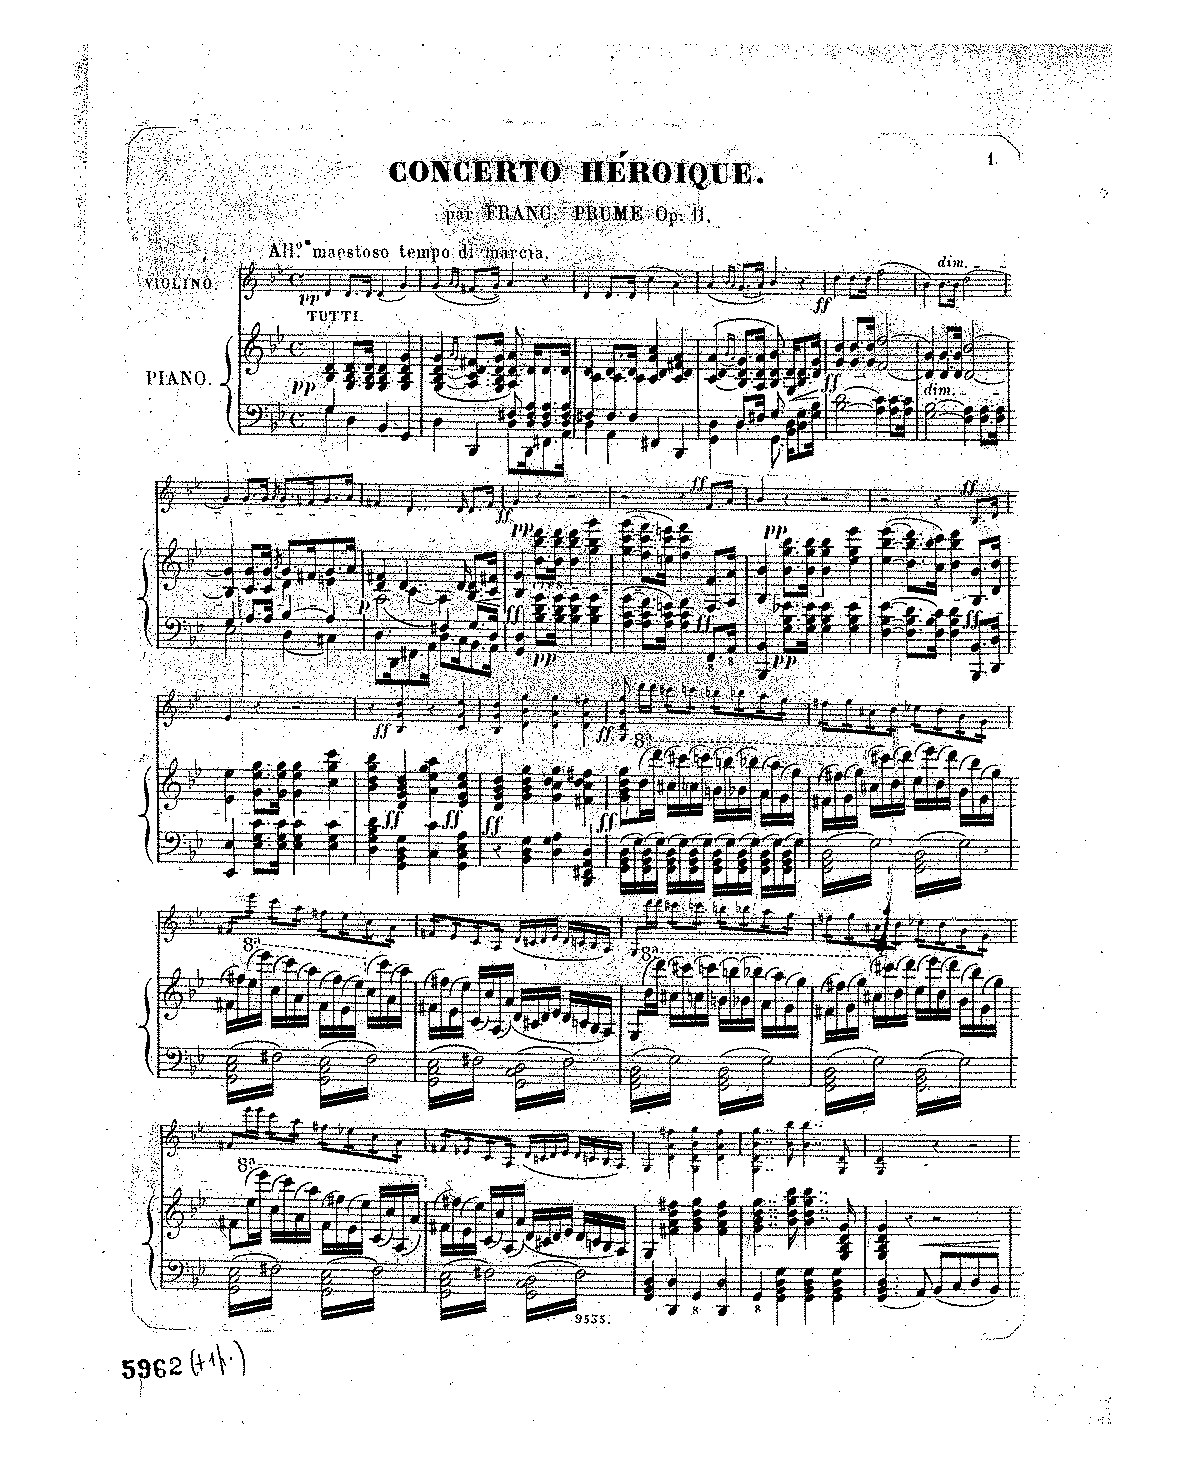 PMLP163372-PIANO PART 001.pdf